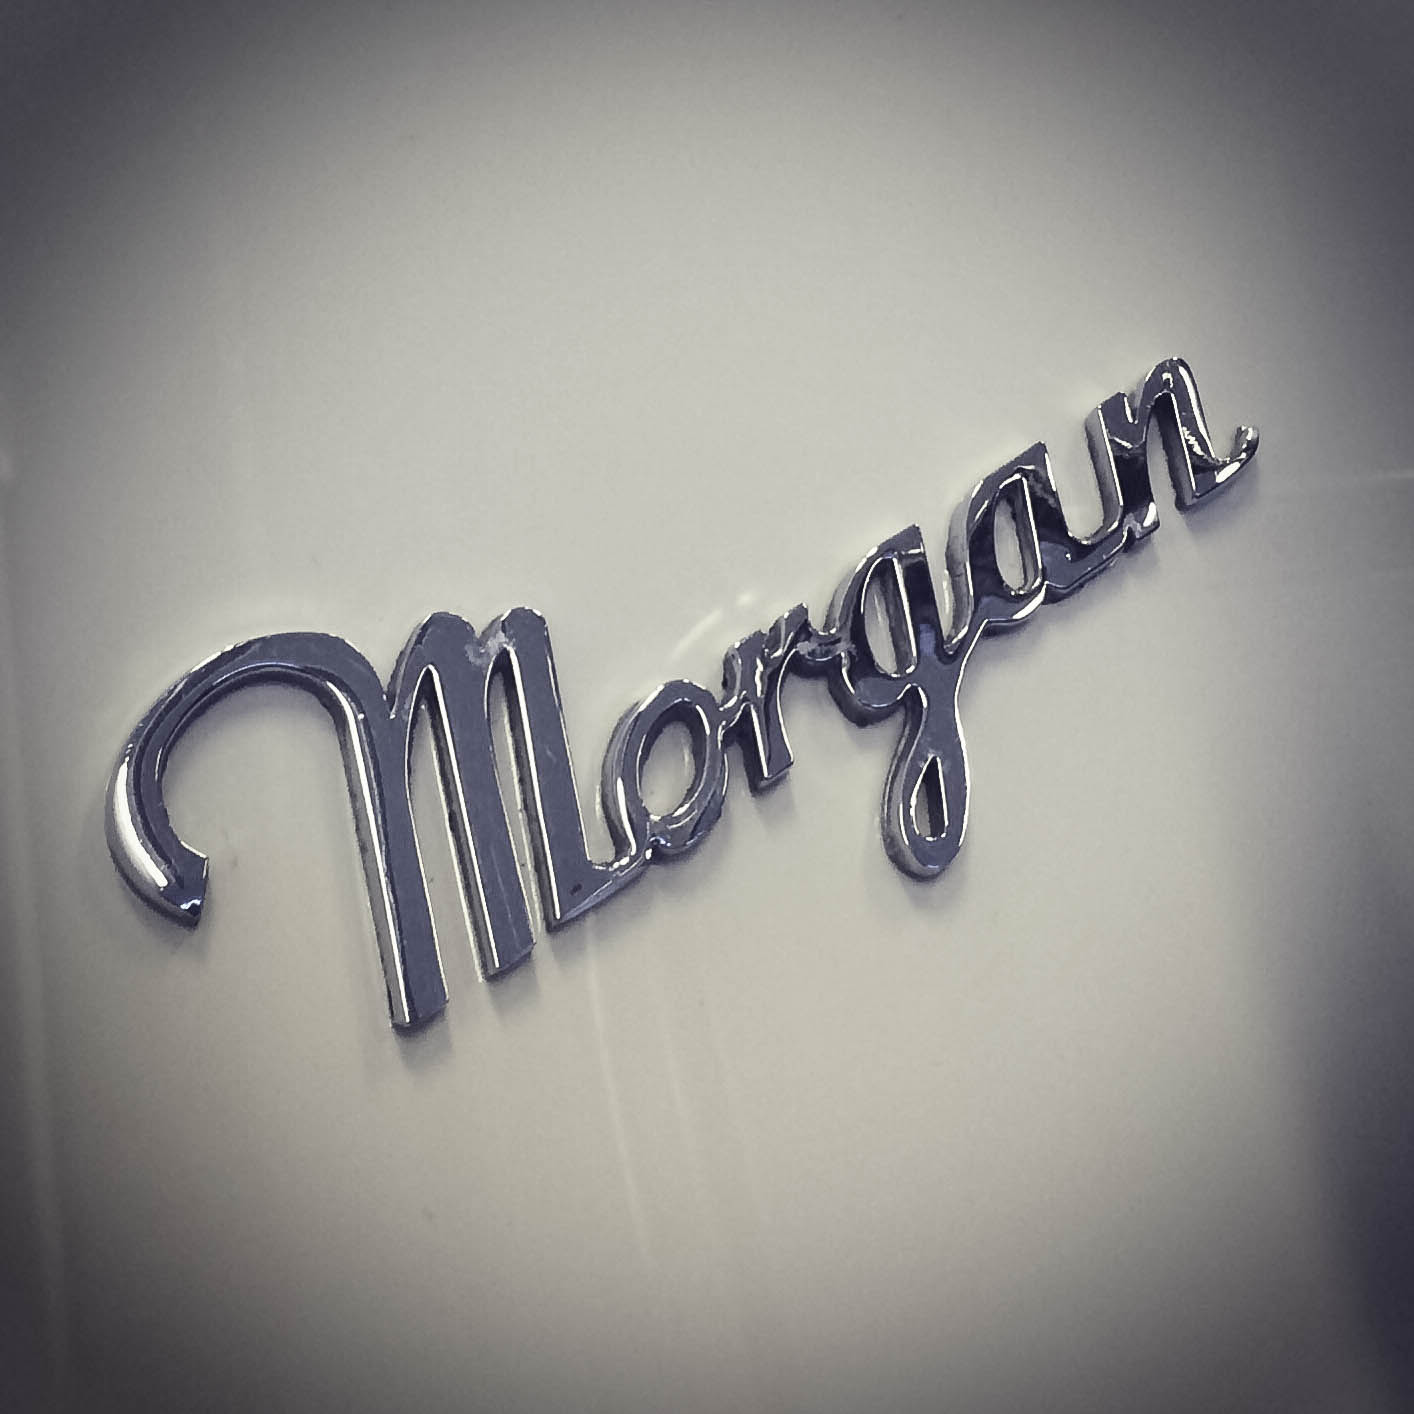 Morgan – Badge